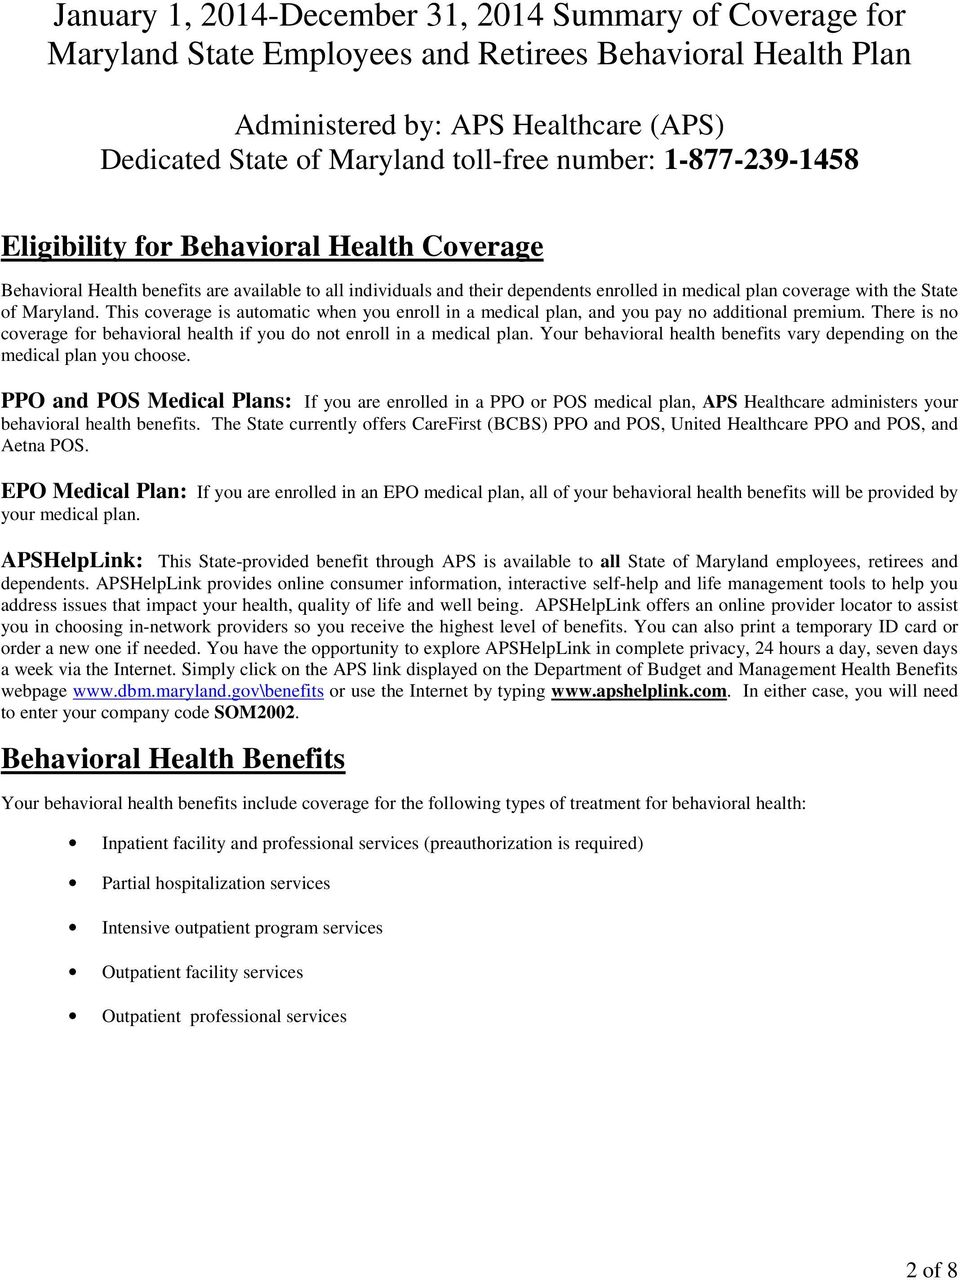 Maryland. This coverage is automatic when you enroll in a medical plan, and you pay no additional premium. There is no coverage for behavioral health if you do not enroll in a medical plan.